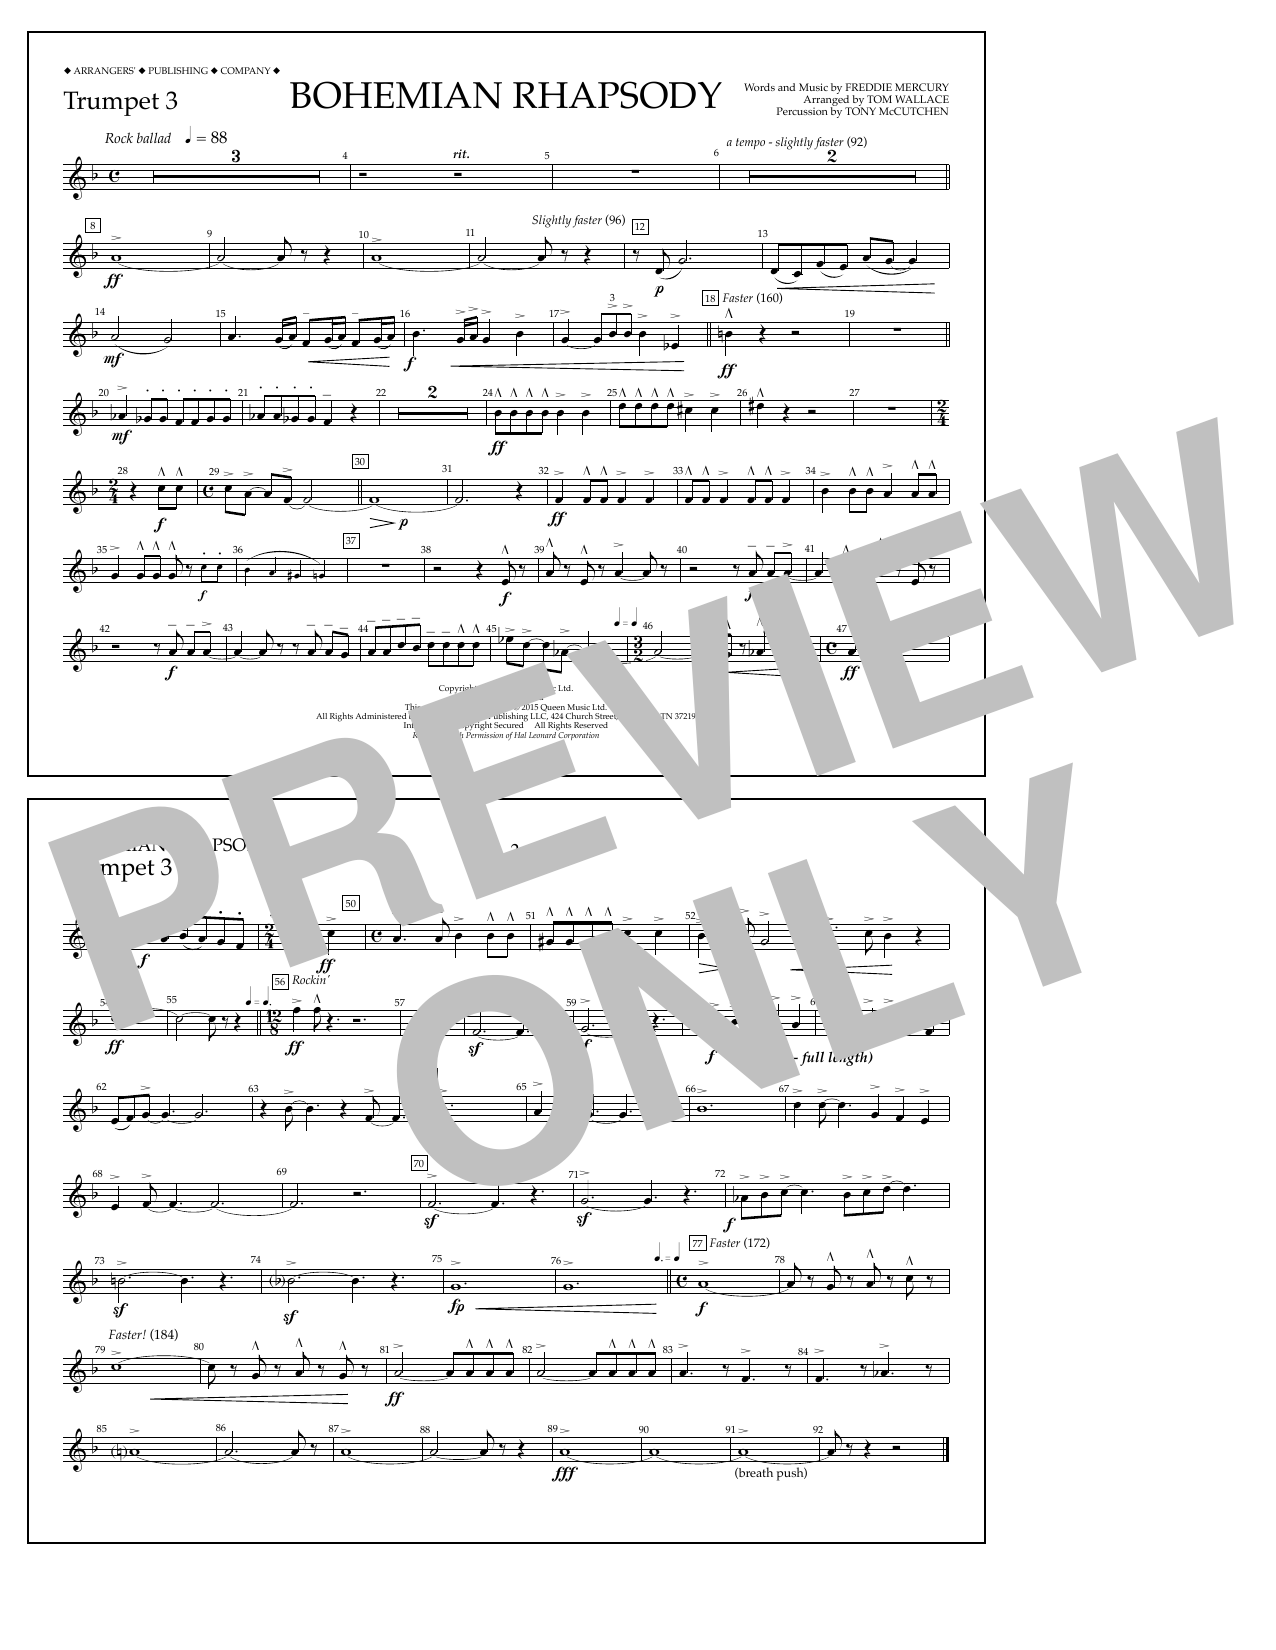 Tom Wallace Bohemian Rhapsody - Trumpet 3 sheet music notes and chords. Download Printable PDF.